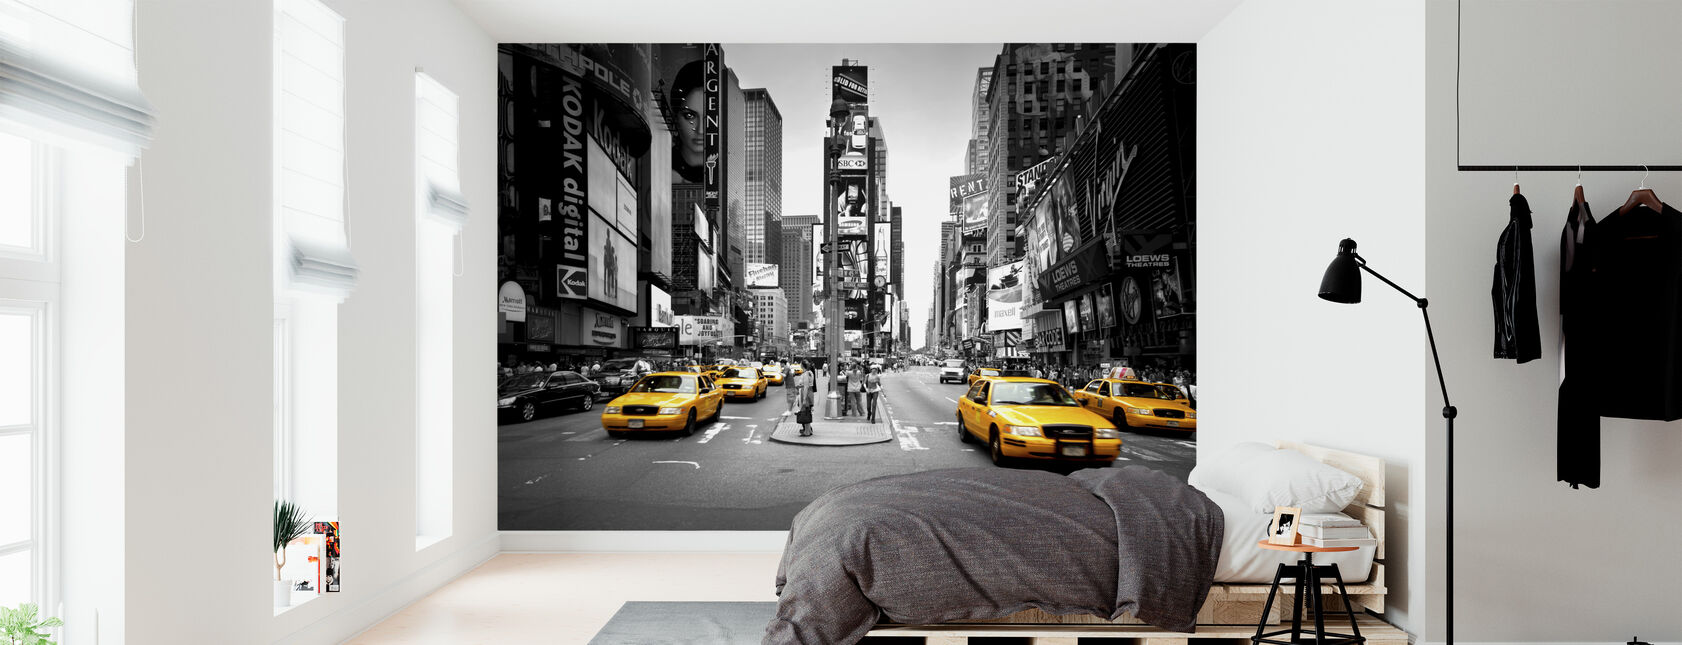 Times Square, New York, Verenigde Staten - Behang - Slaapkamer